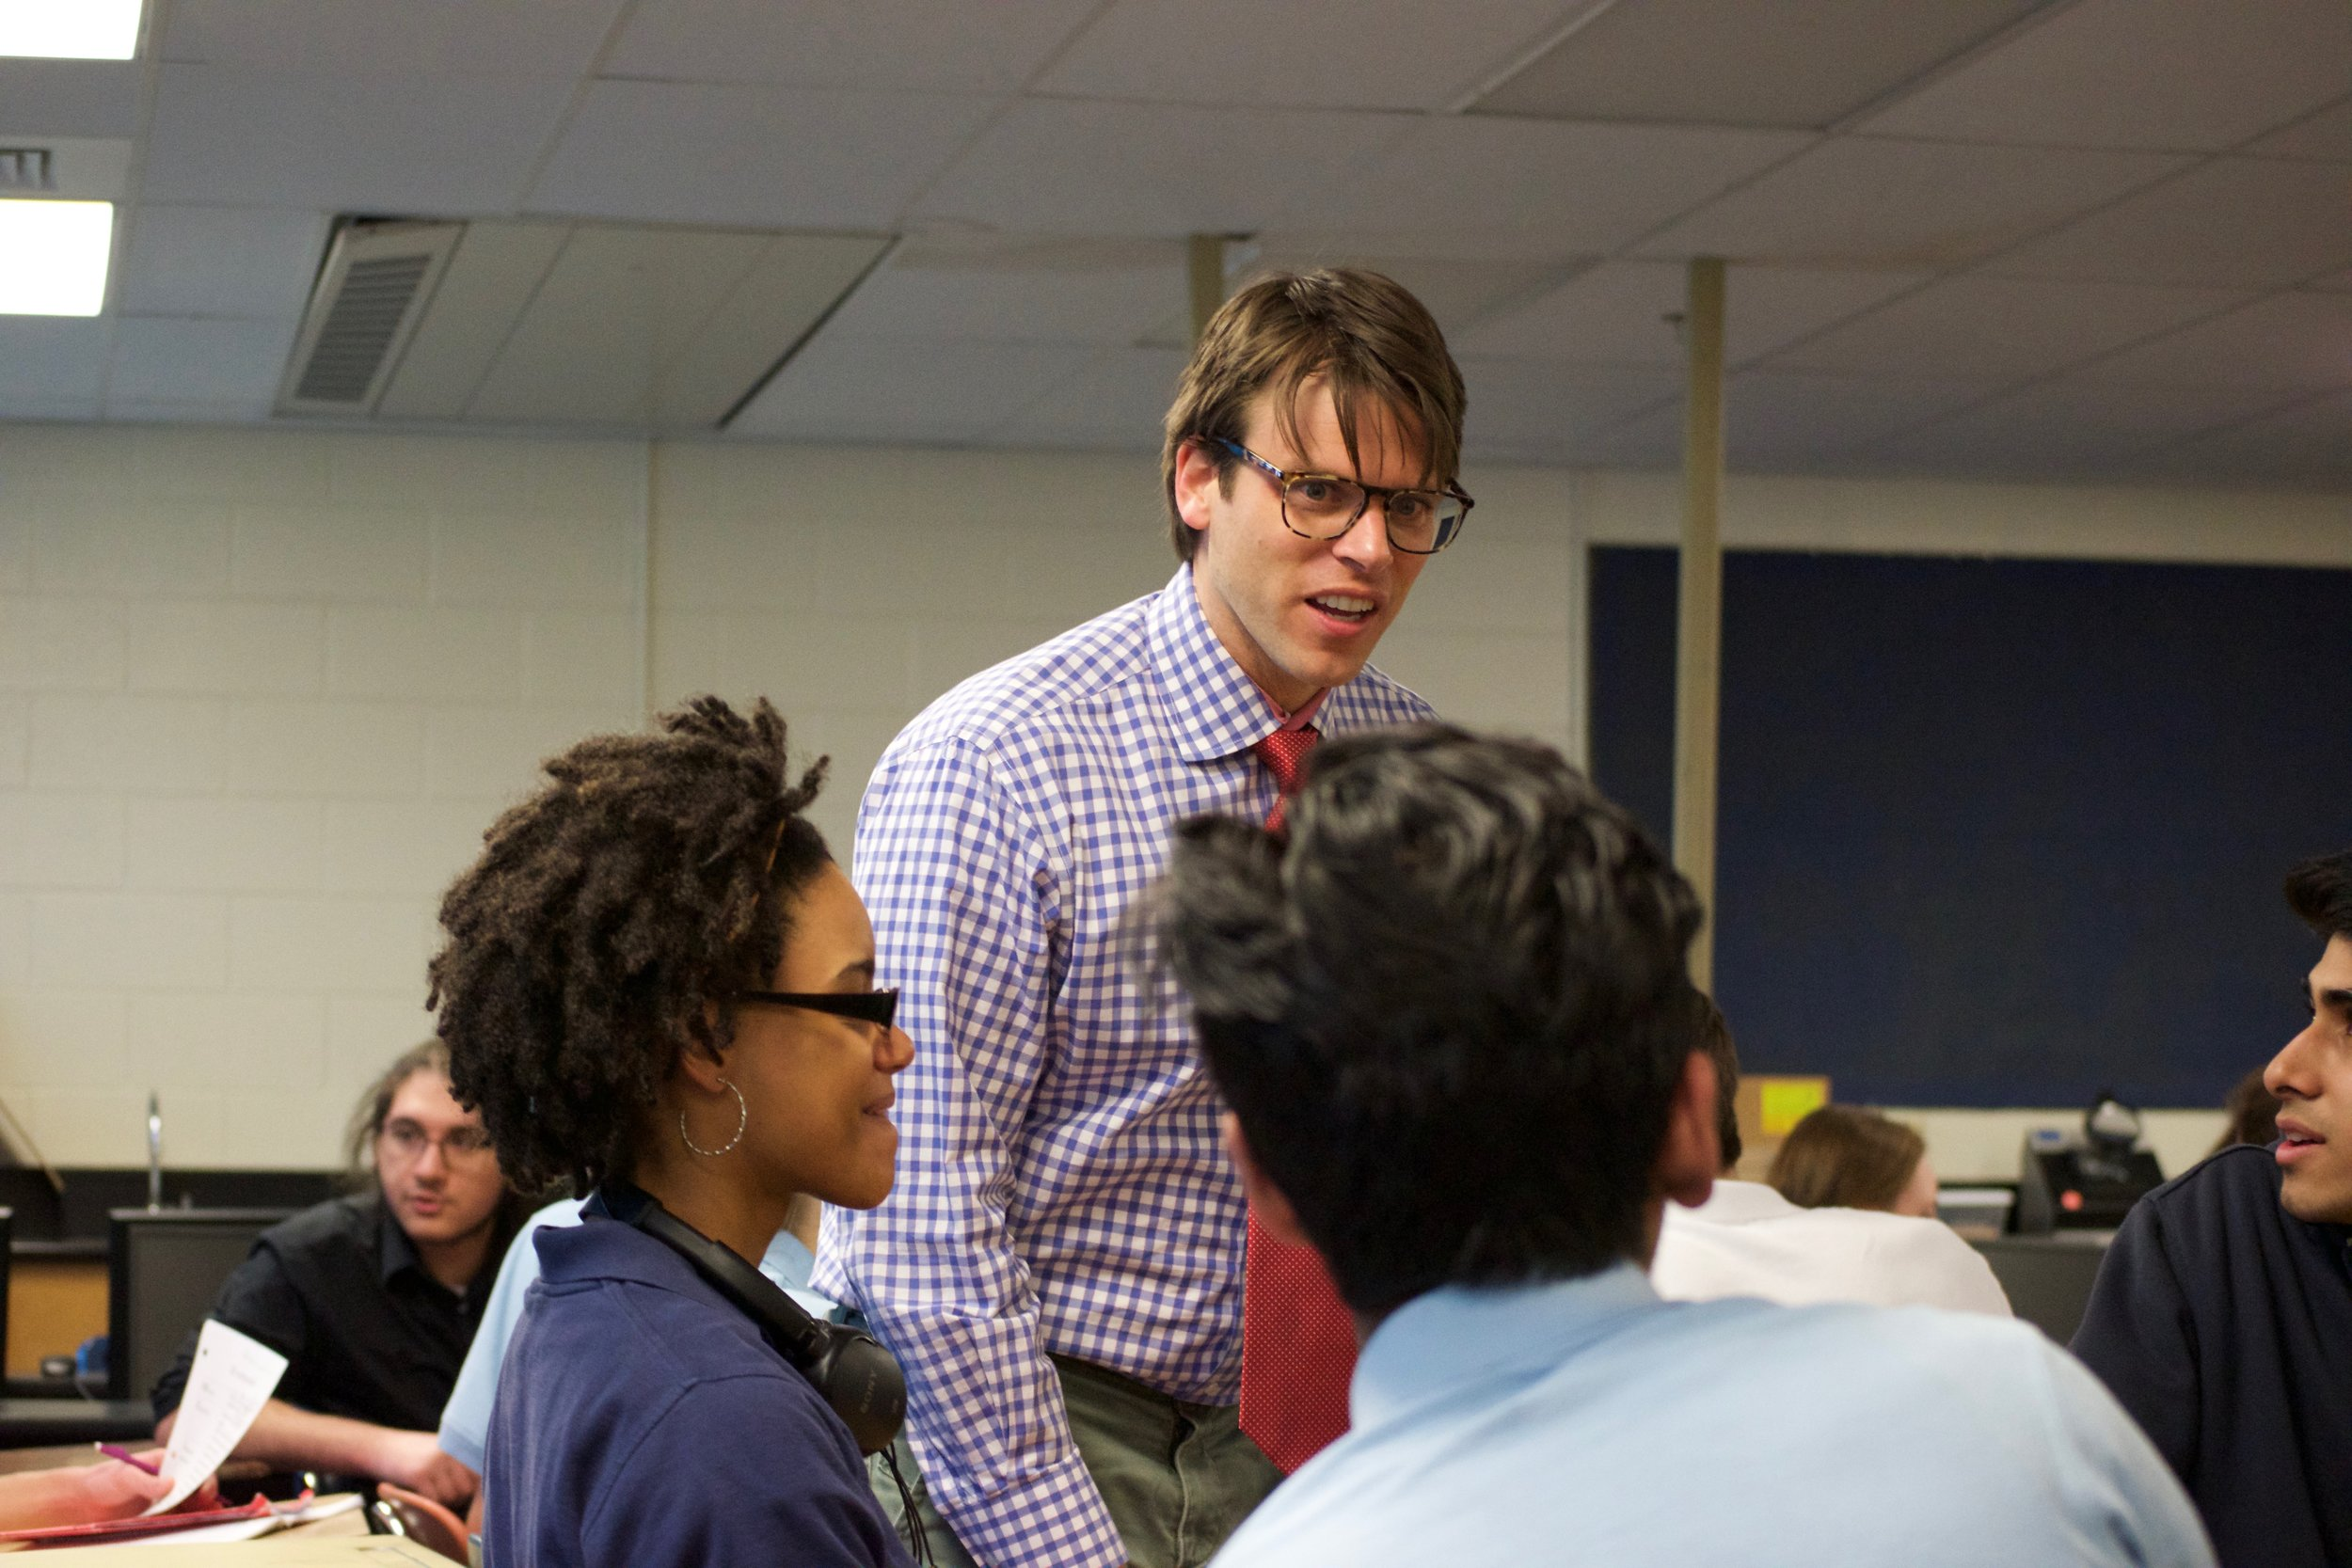 Senor Greenberg isextremely active in the classroom and moves around to interact with different students. His classes involve speaking with peers, viewing authentic Spanish resources, and expanding one's world view. Photo by Connor Carp.